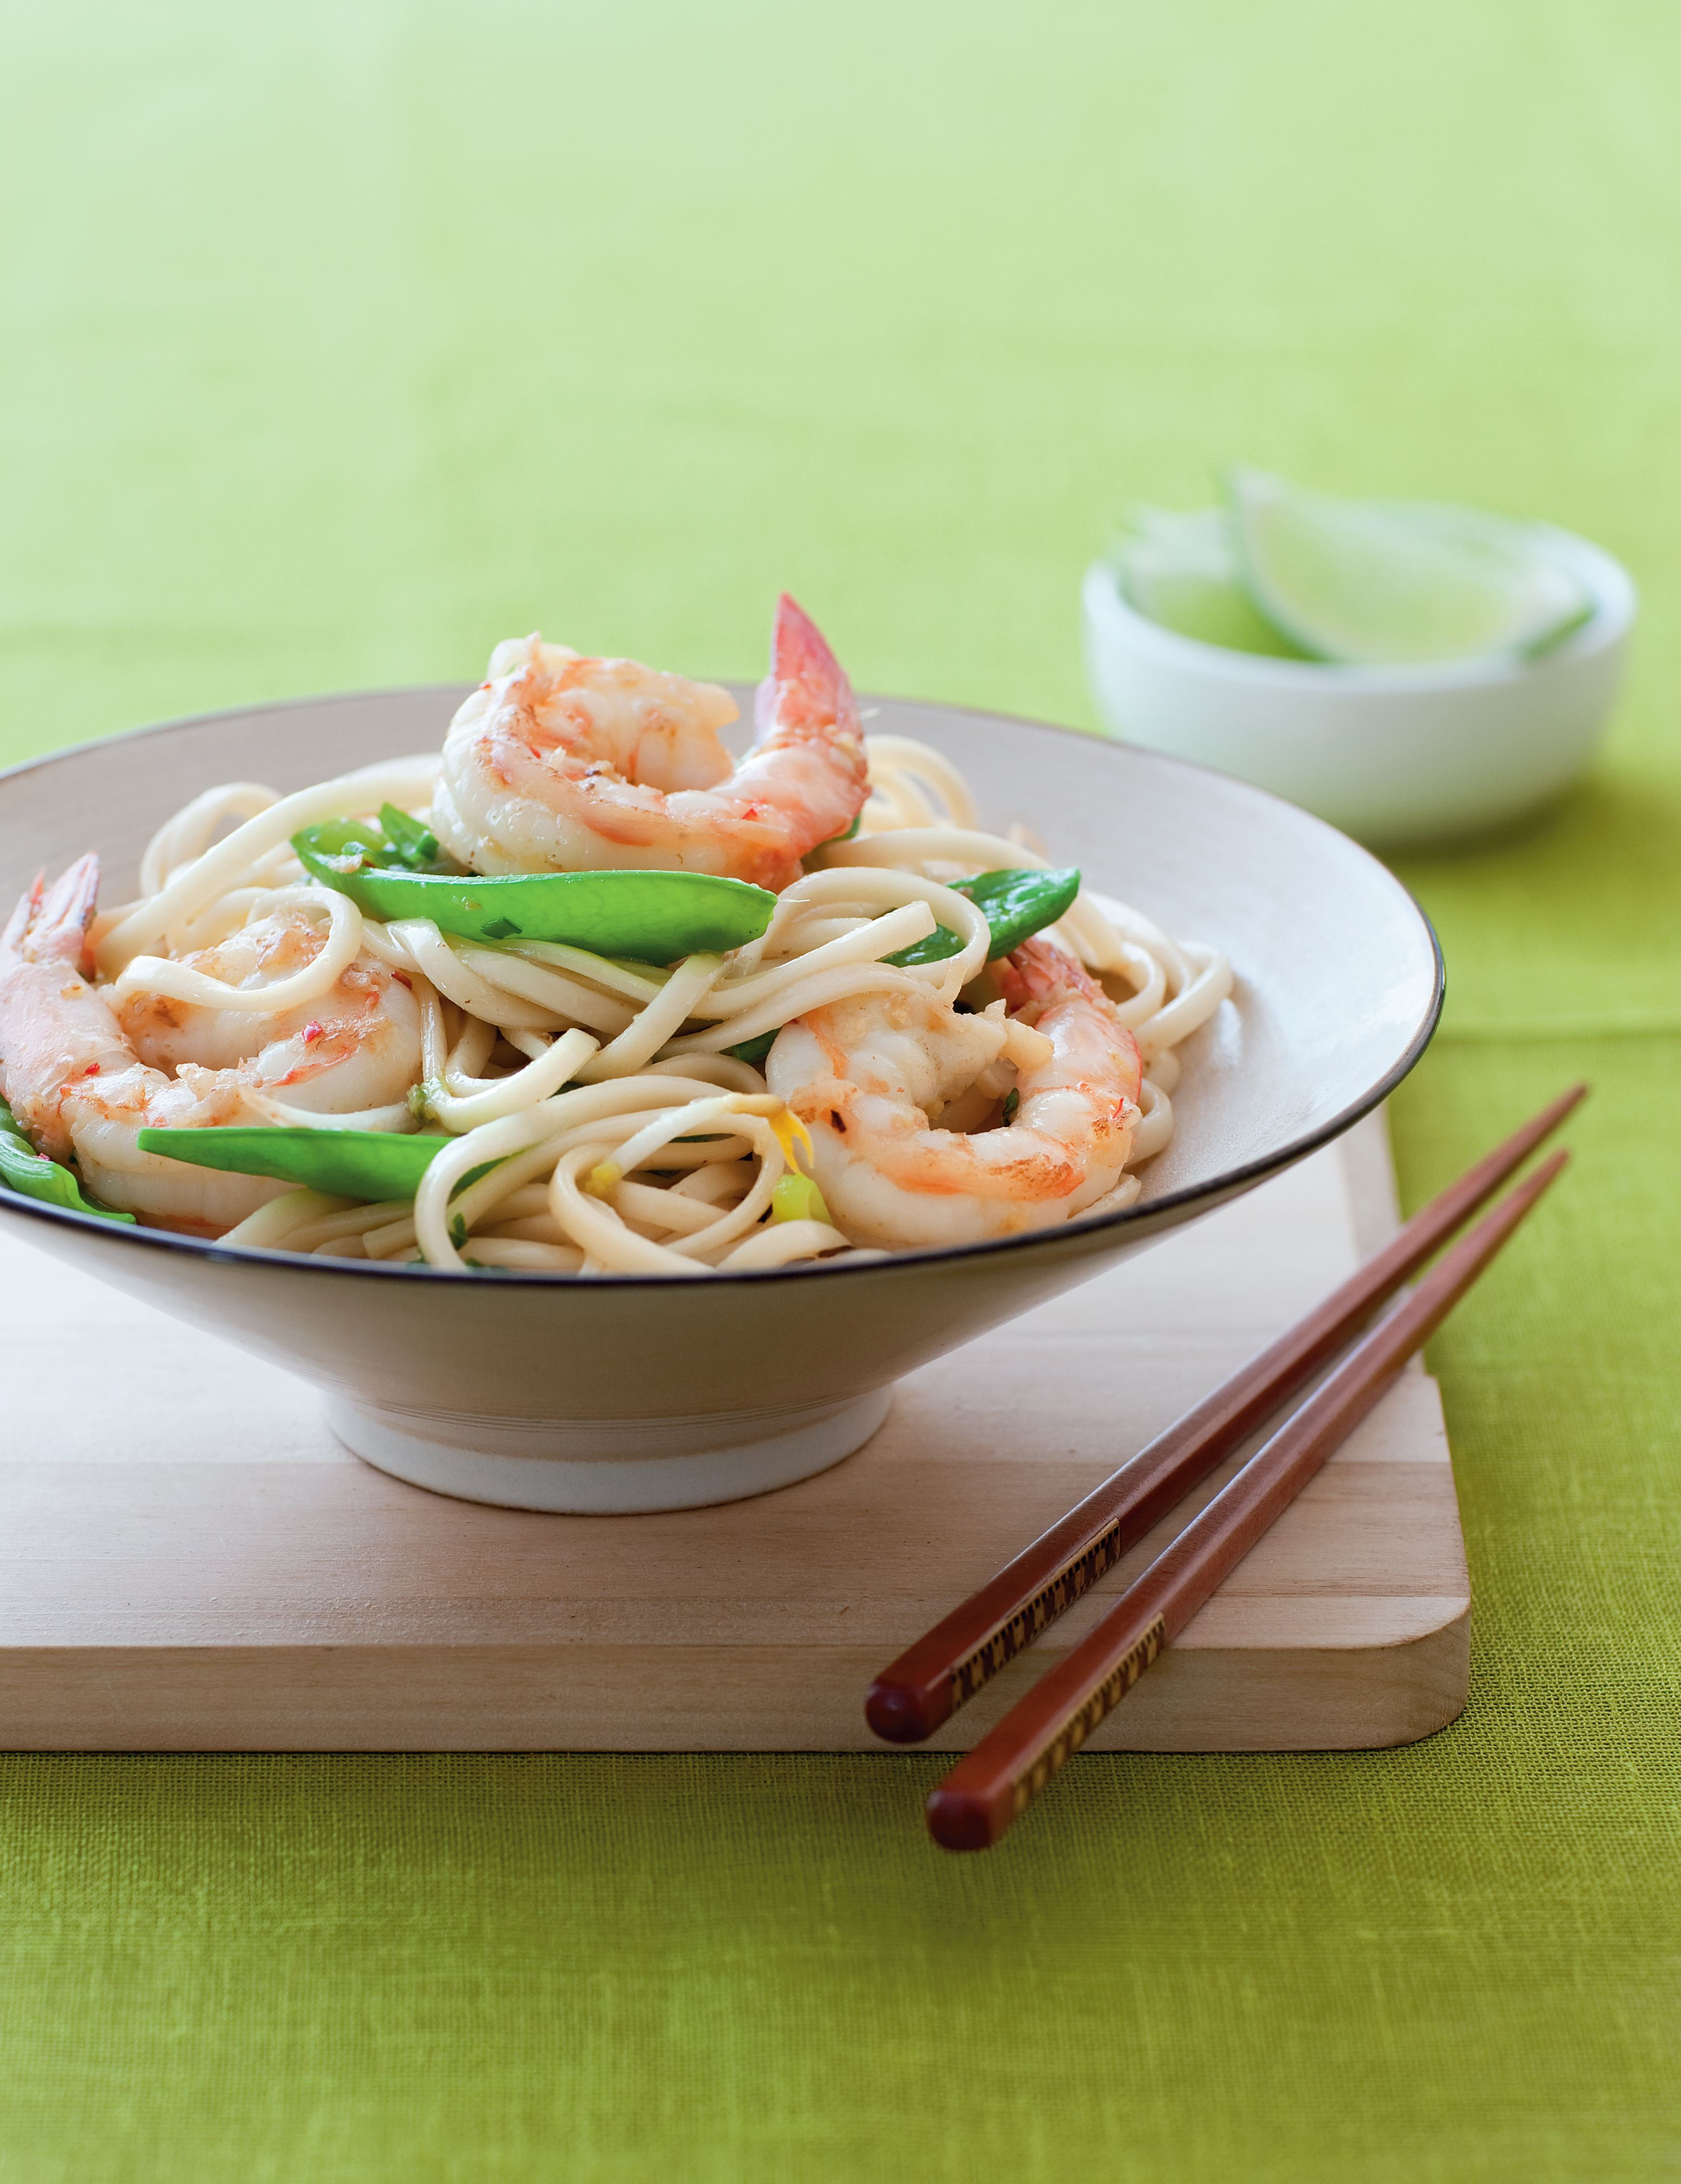 Stir-fried noodles with prawns and snow peas